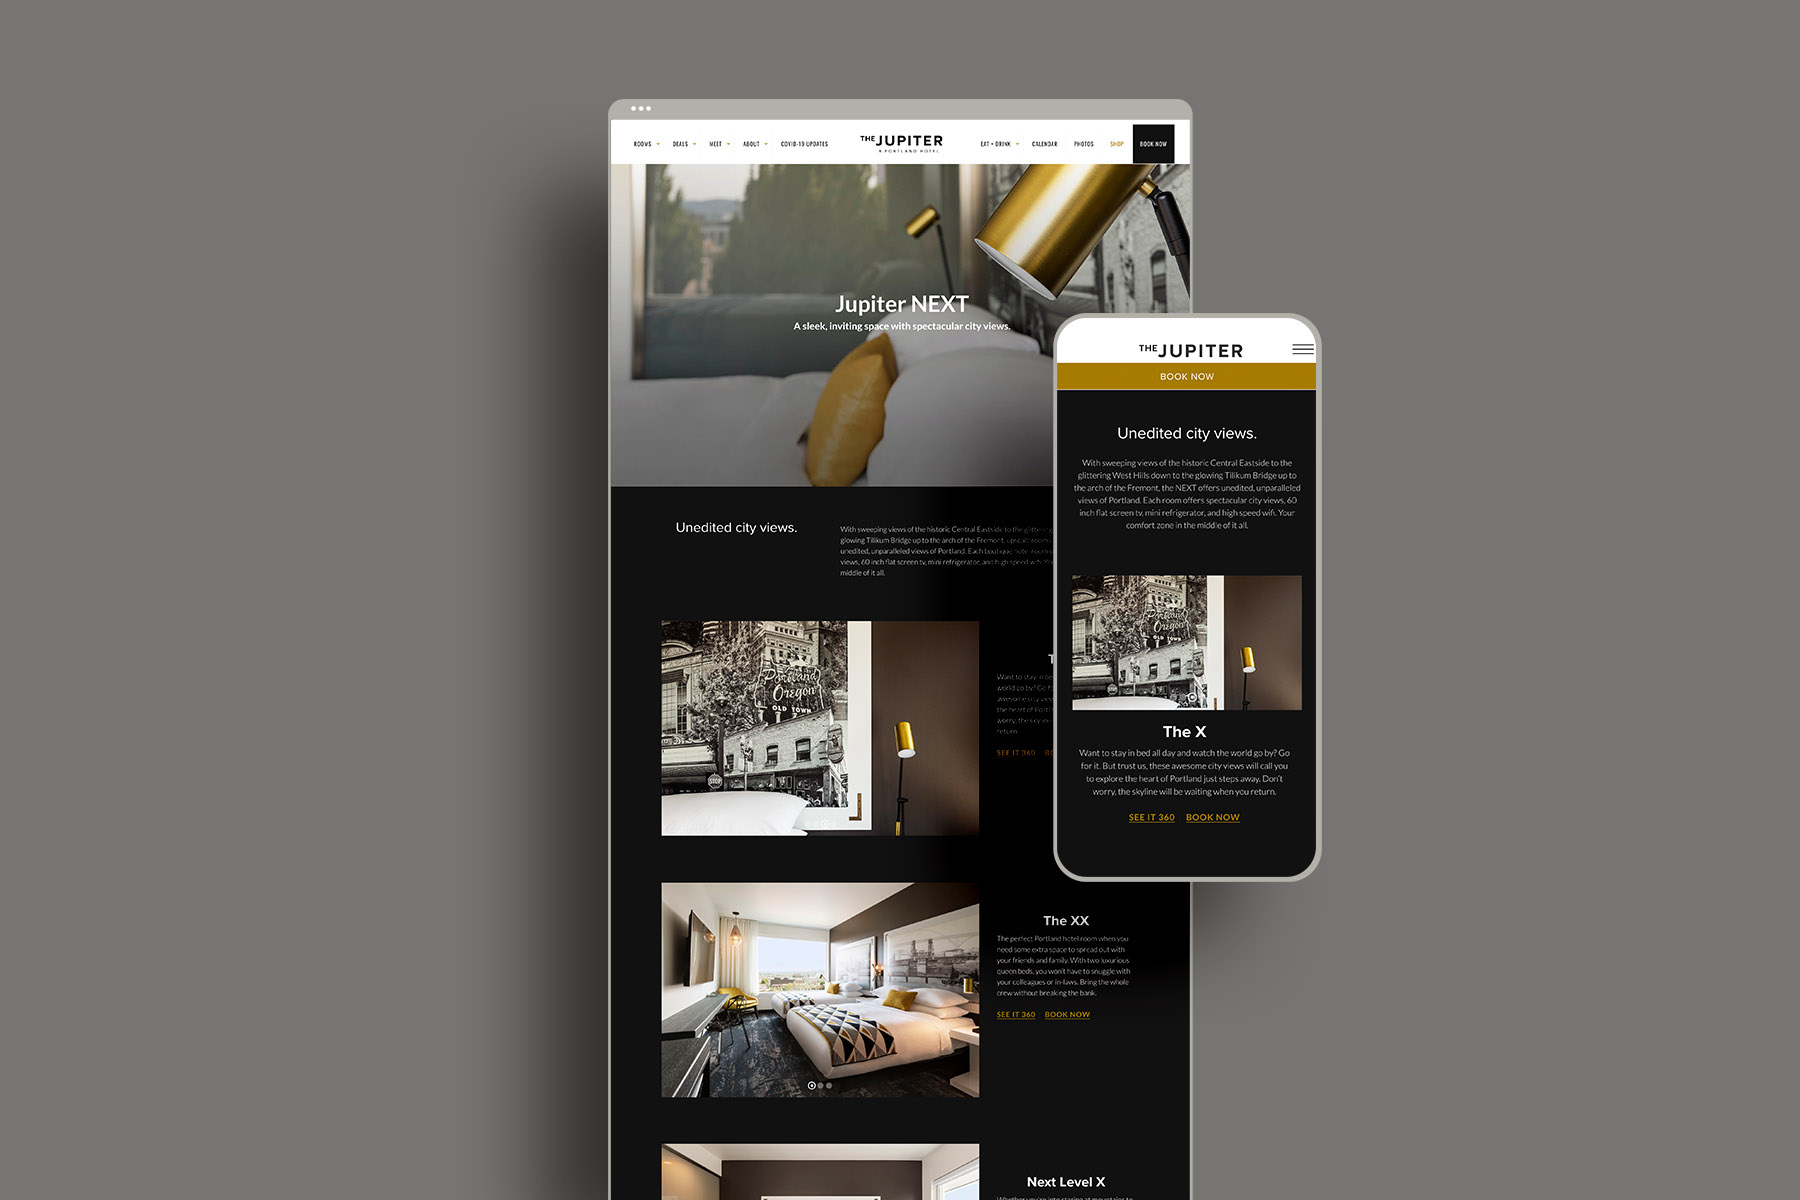 Web design for the jupiter hotel events page